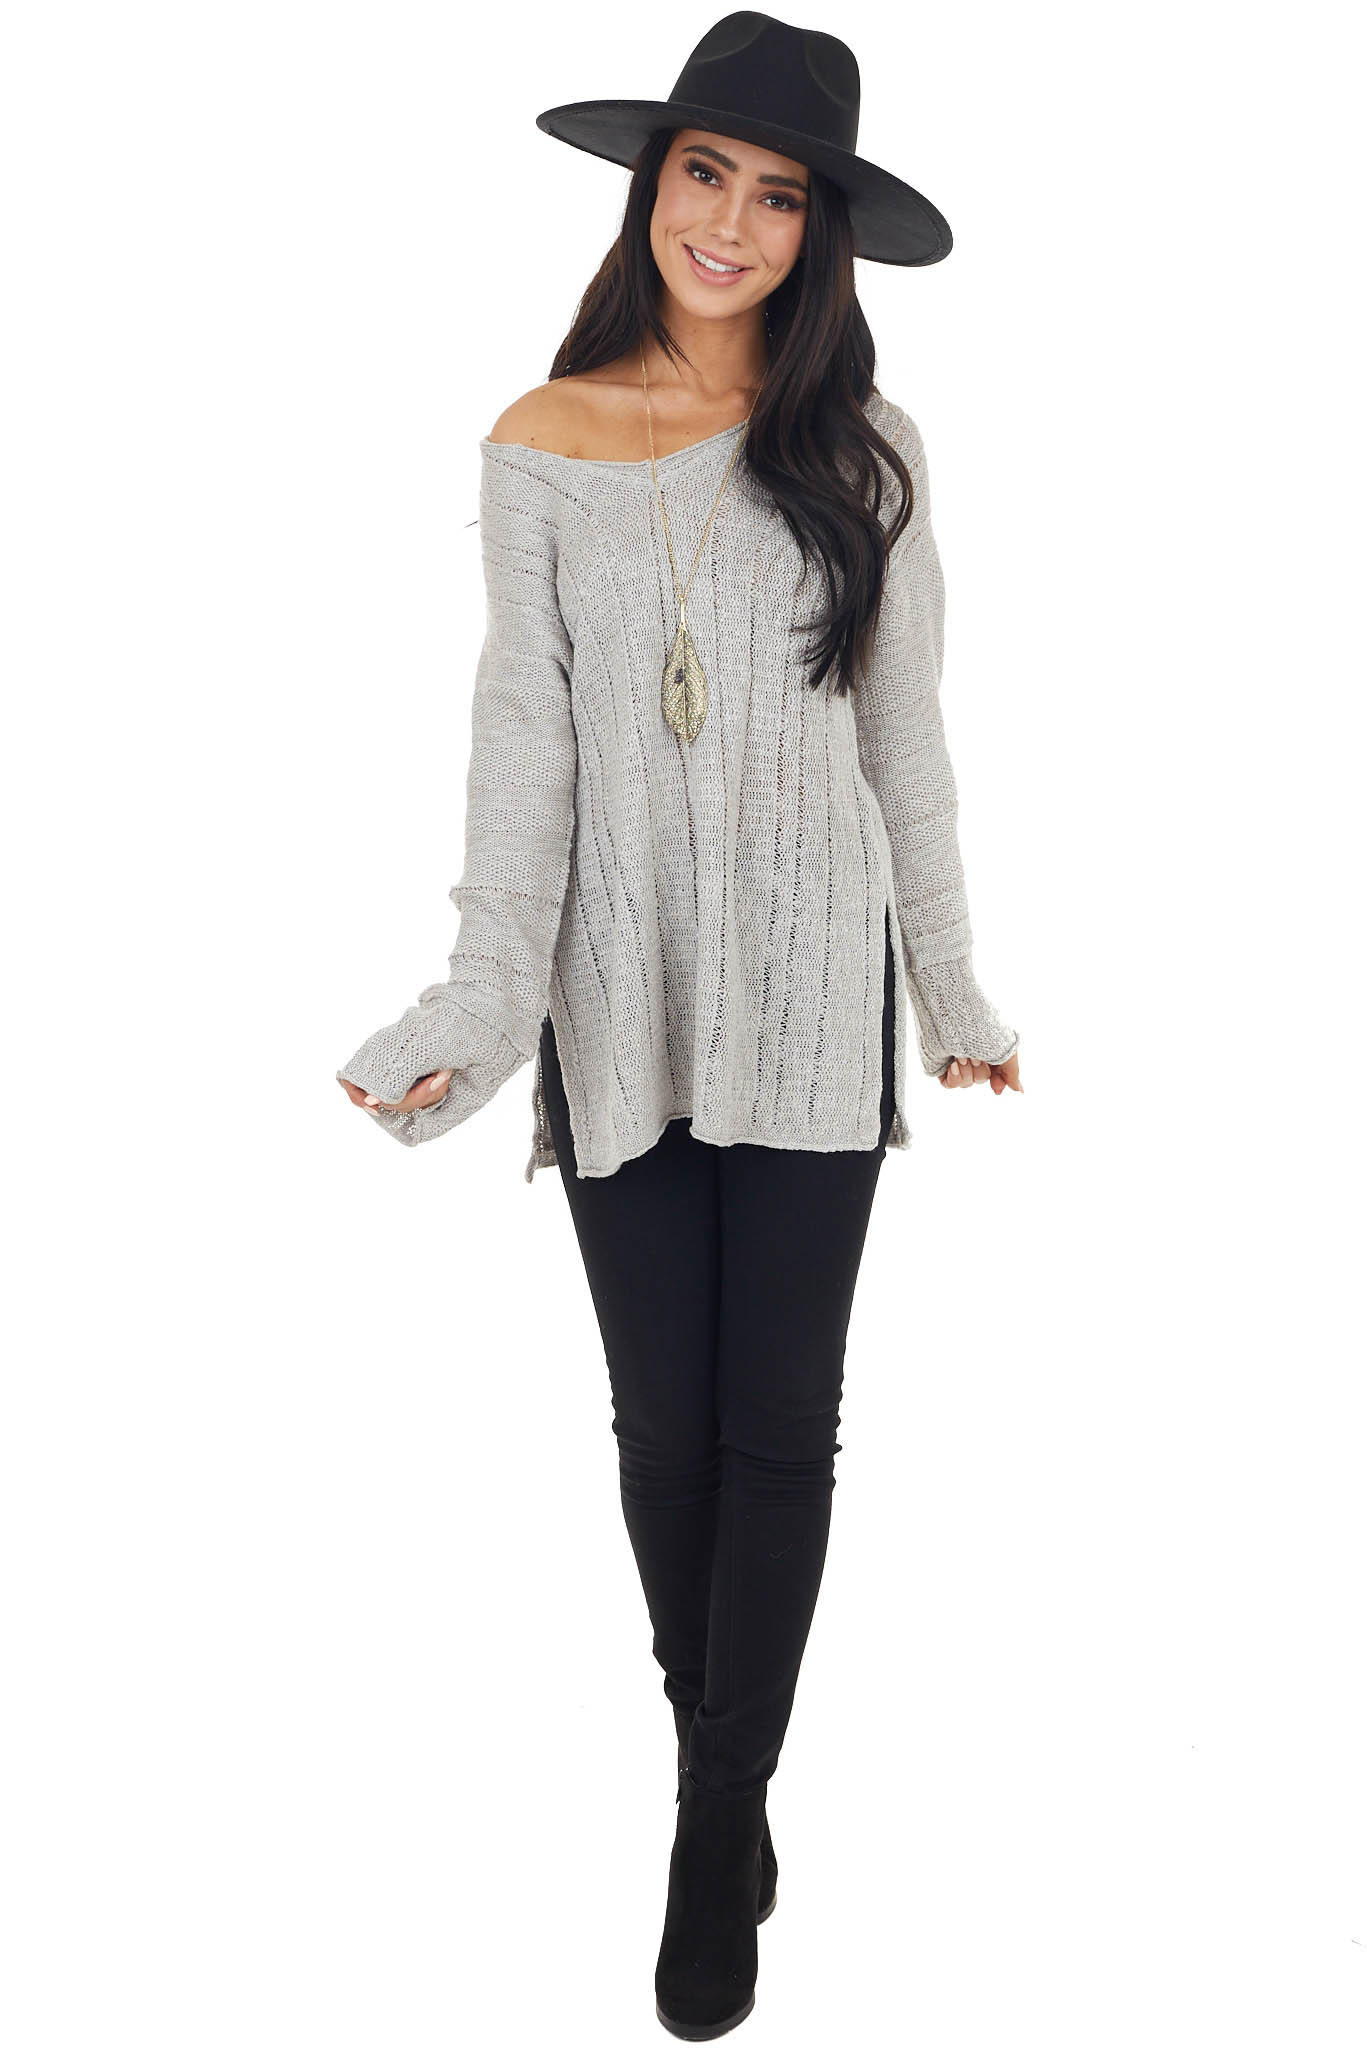 Dove Grey Loose Knit Textured Stripe Long Sleeve Top